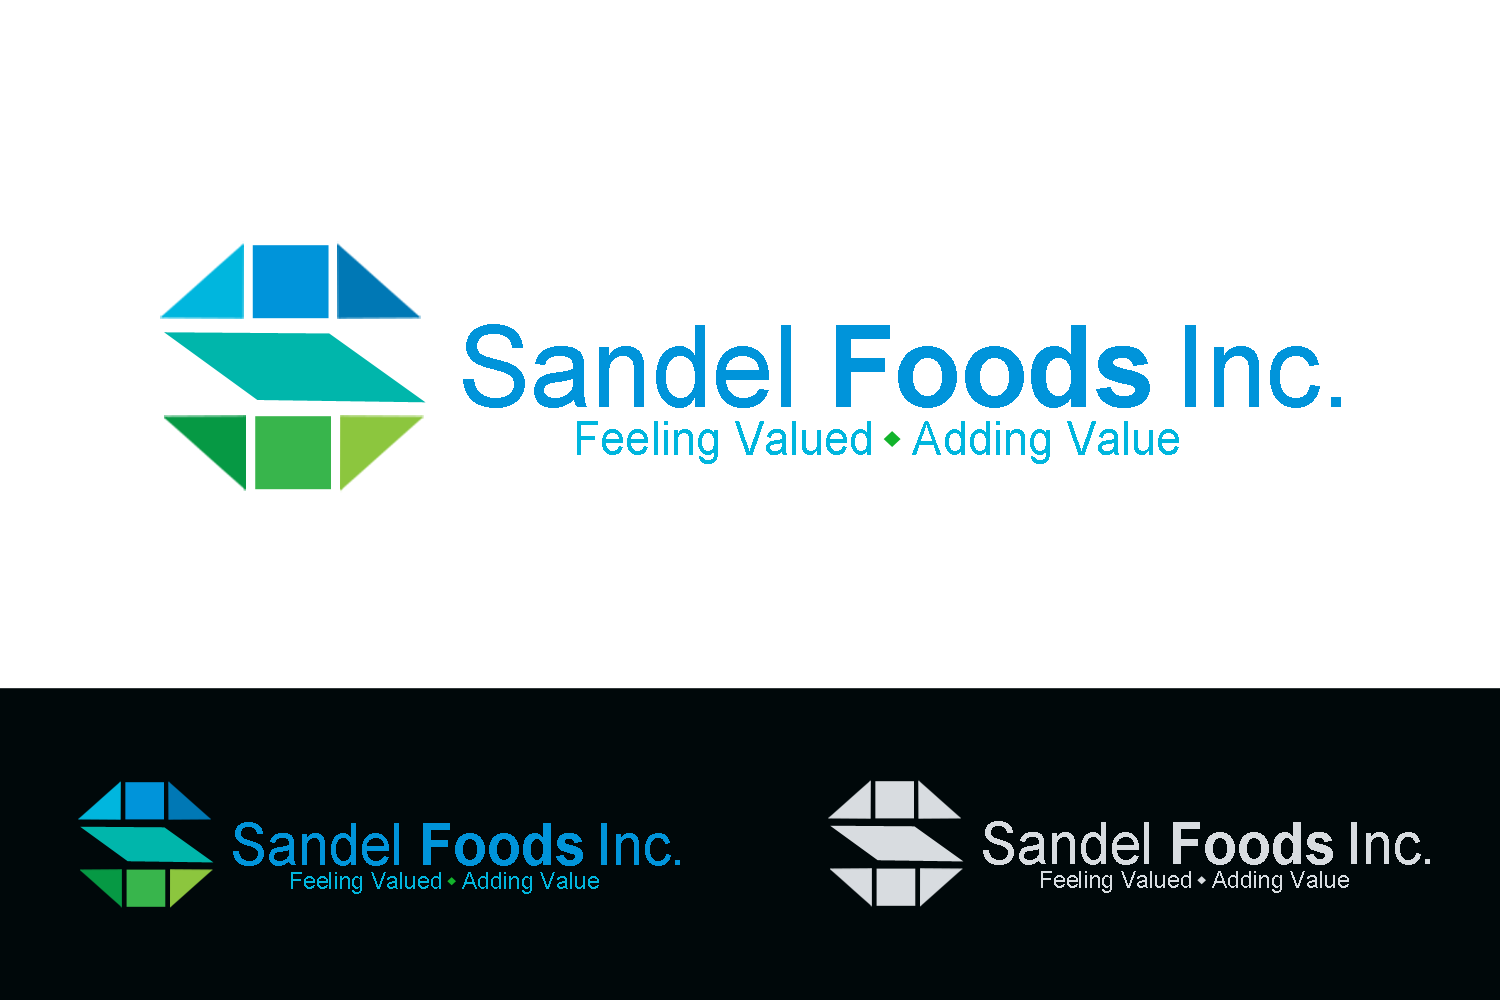 Logo Design by Golden_Hand - Entry No. 21 in the Logo Design Contest Fun Logo Design for Sandel Foods Inc.